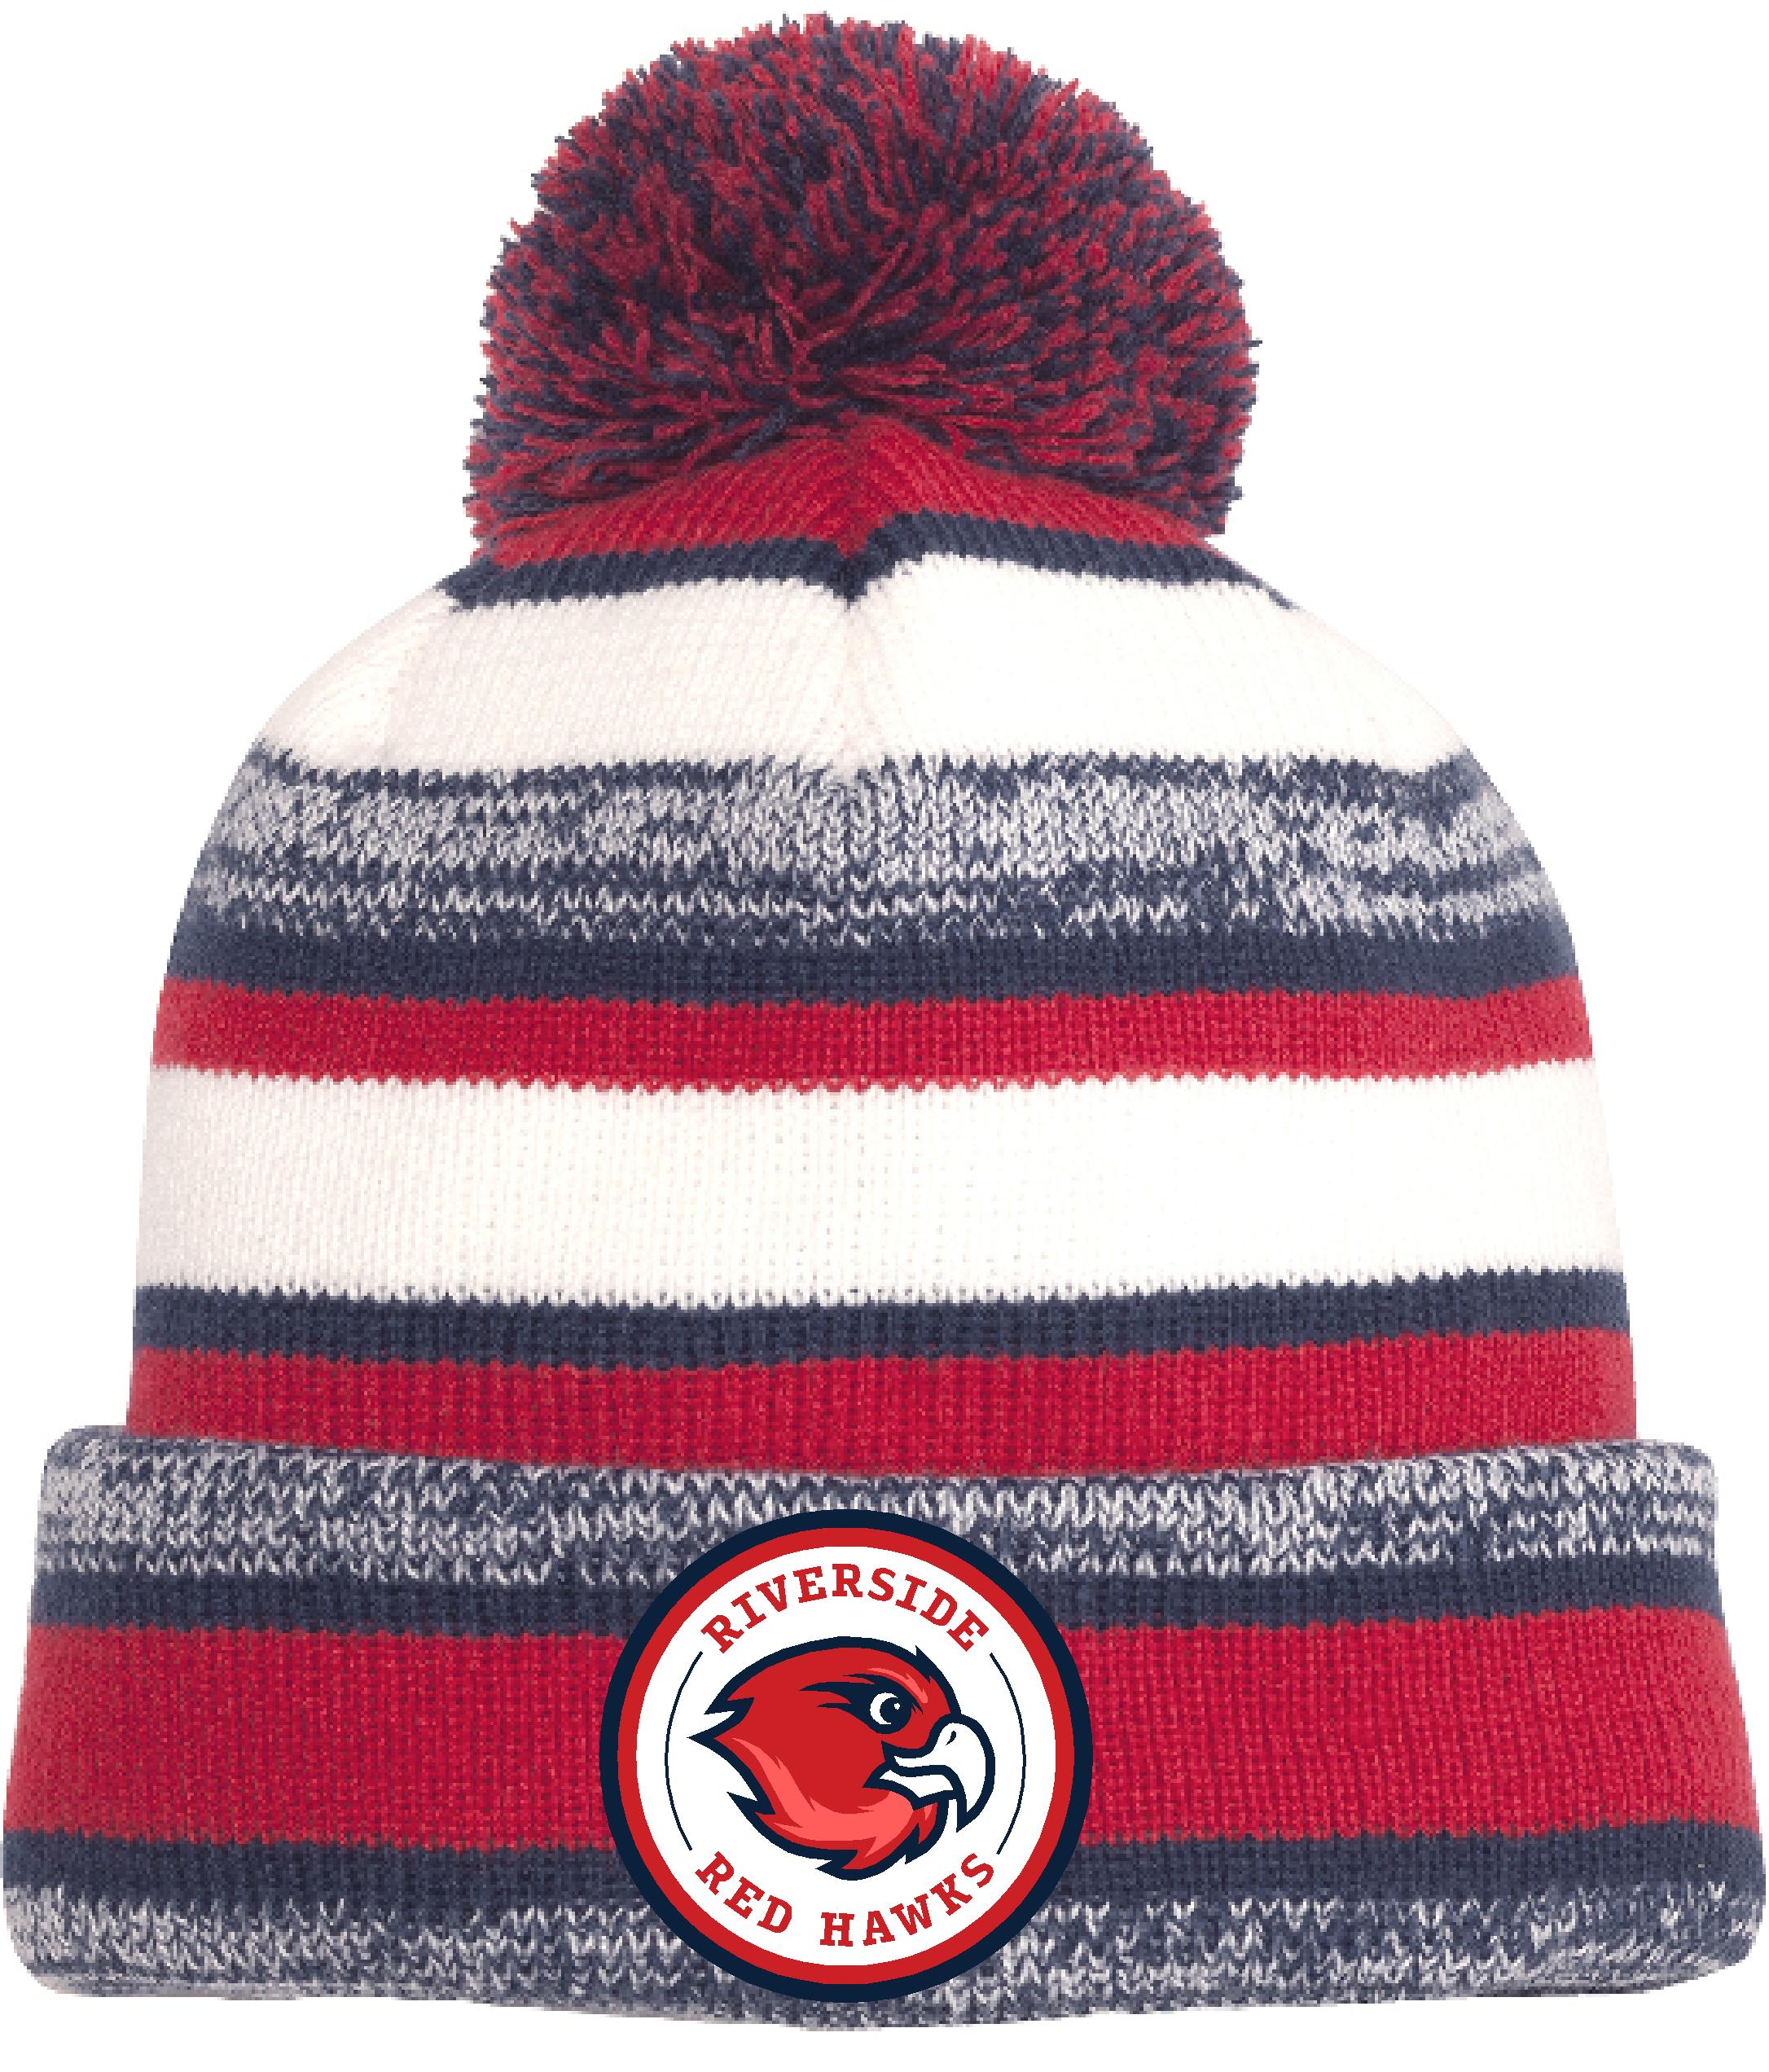 Wooly red, white and blue beanie hat